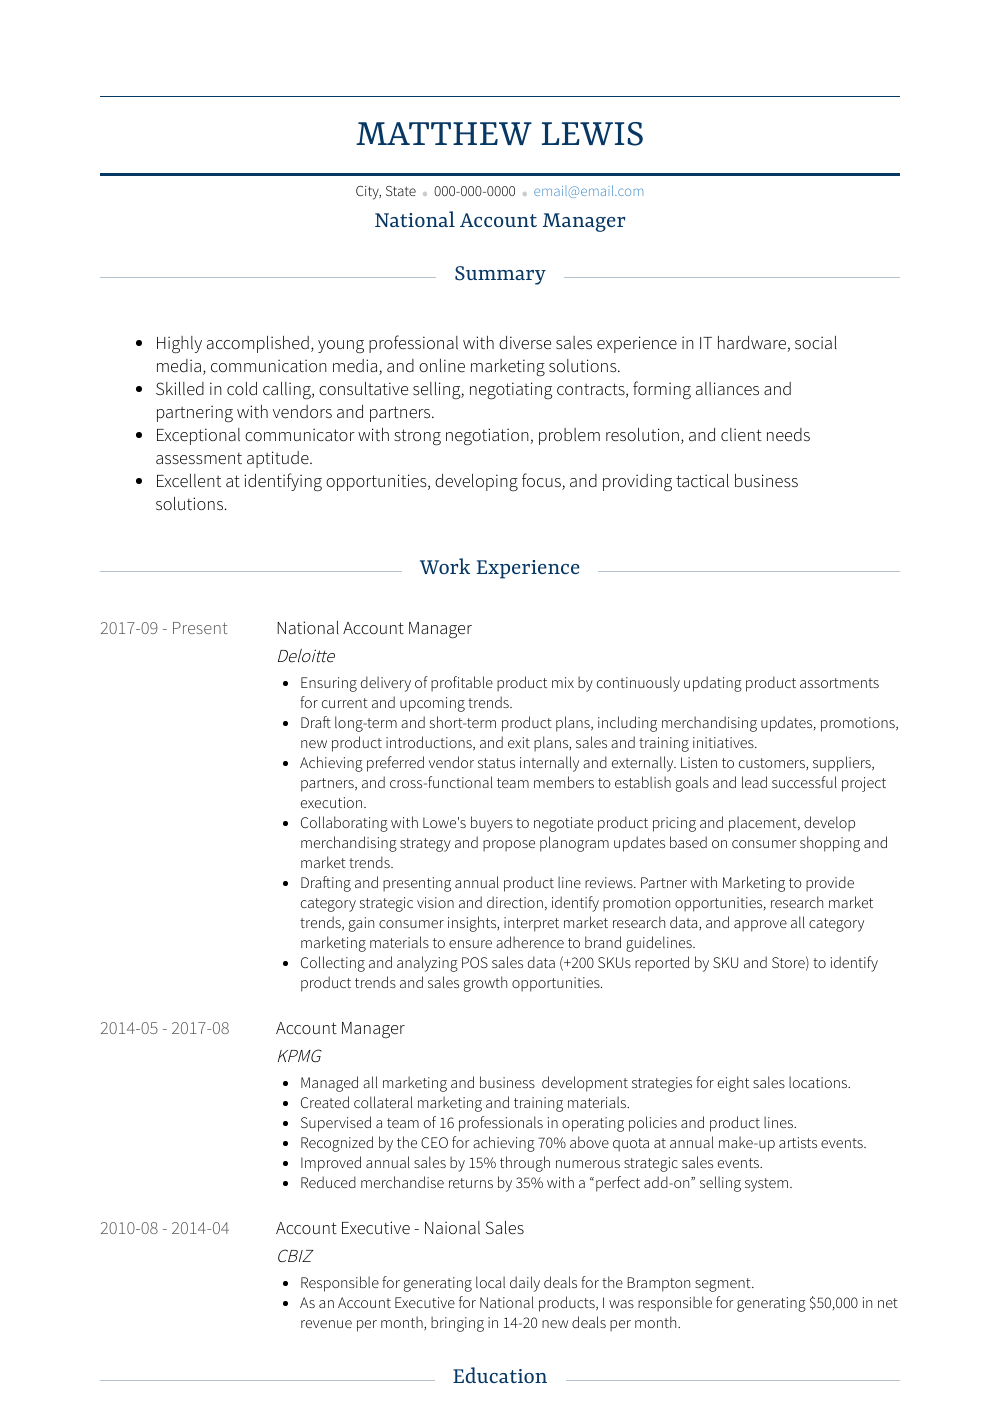 National Account Manager Resume Sample and Template